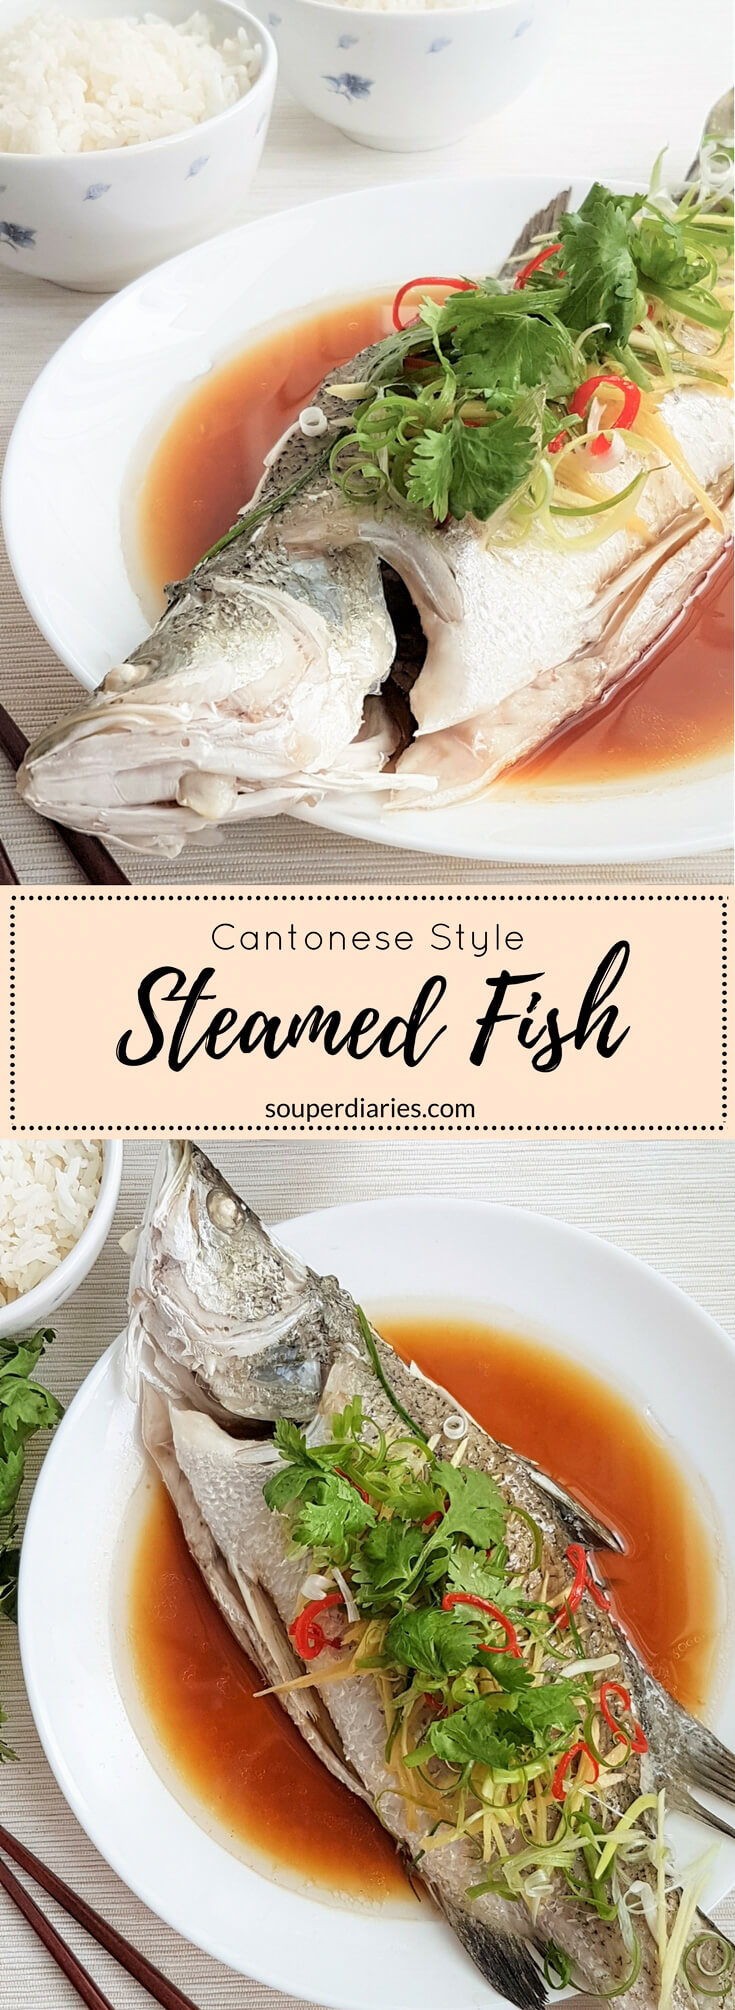 Chinese steamed fish - healthy and delicious!